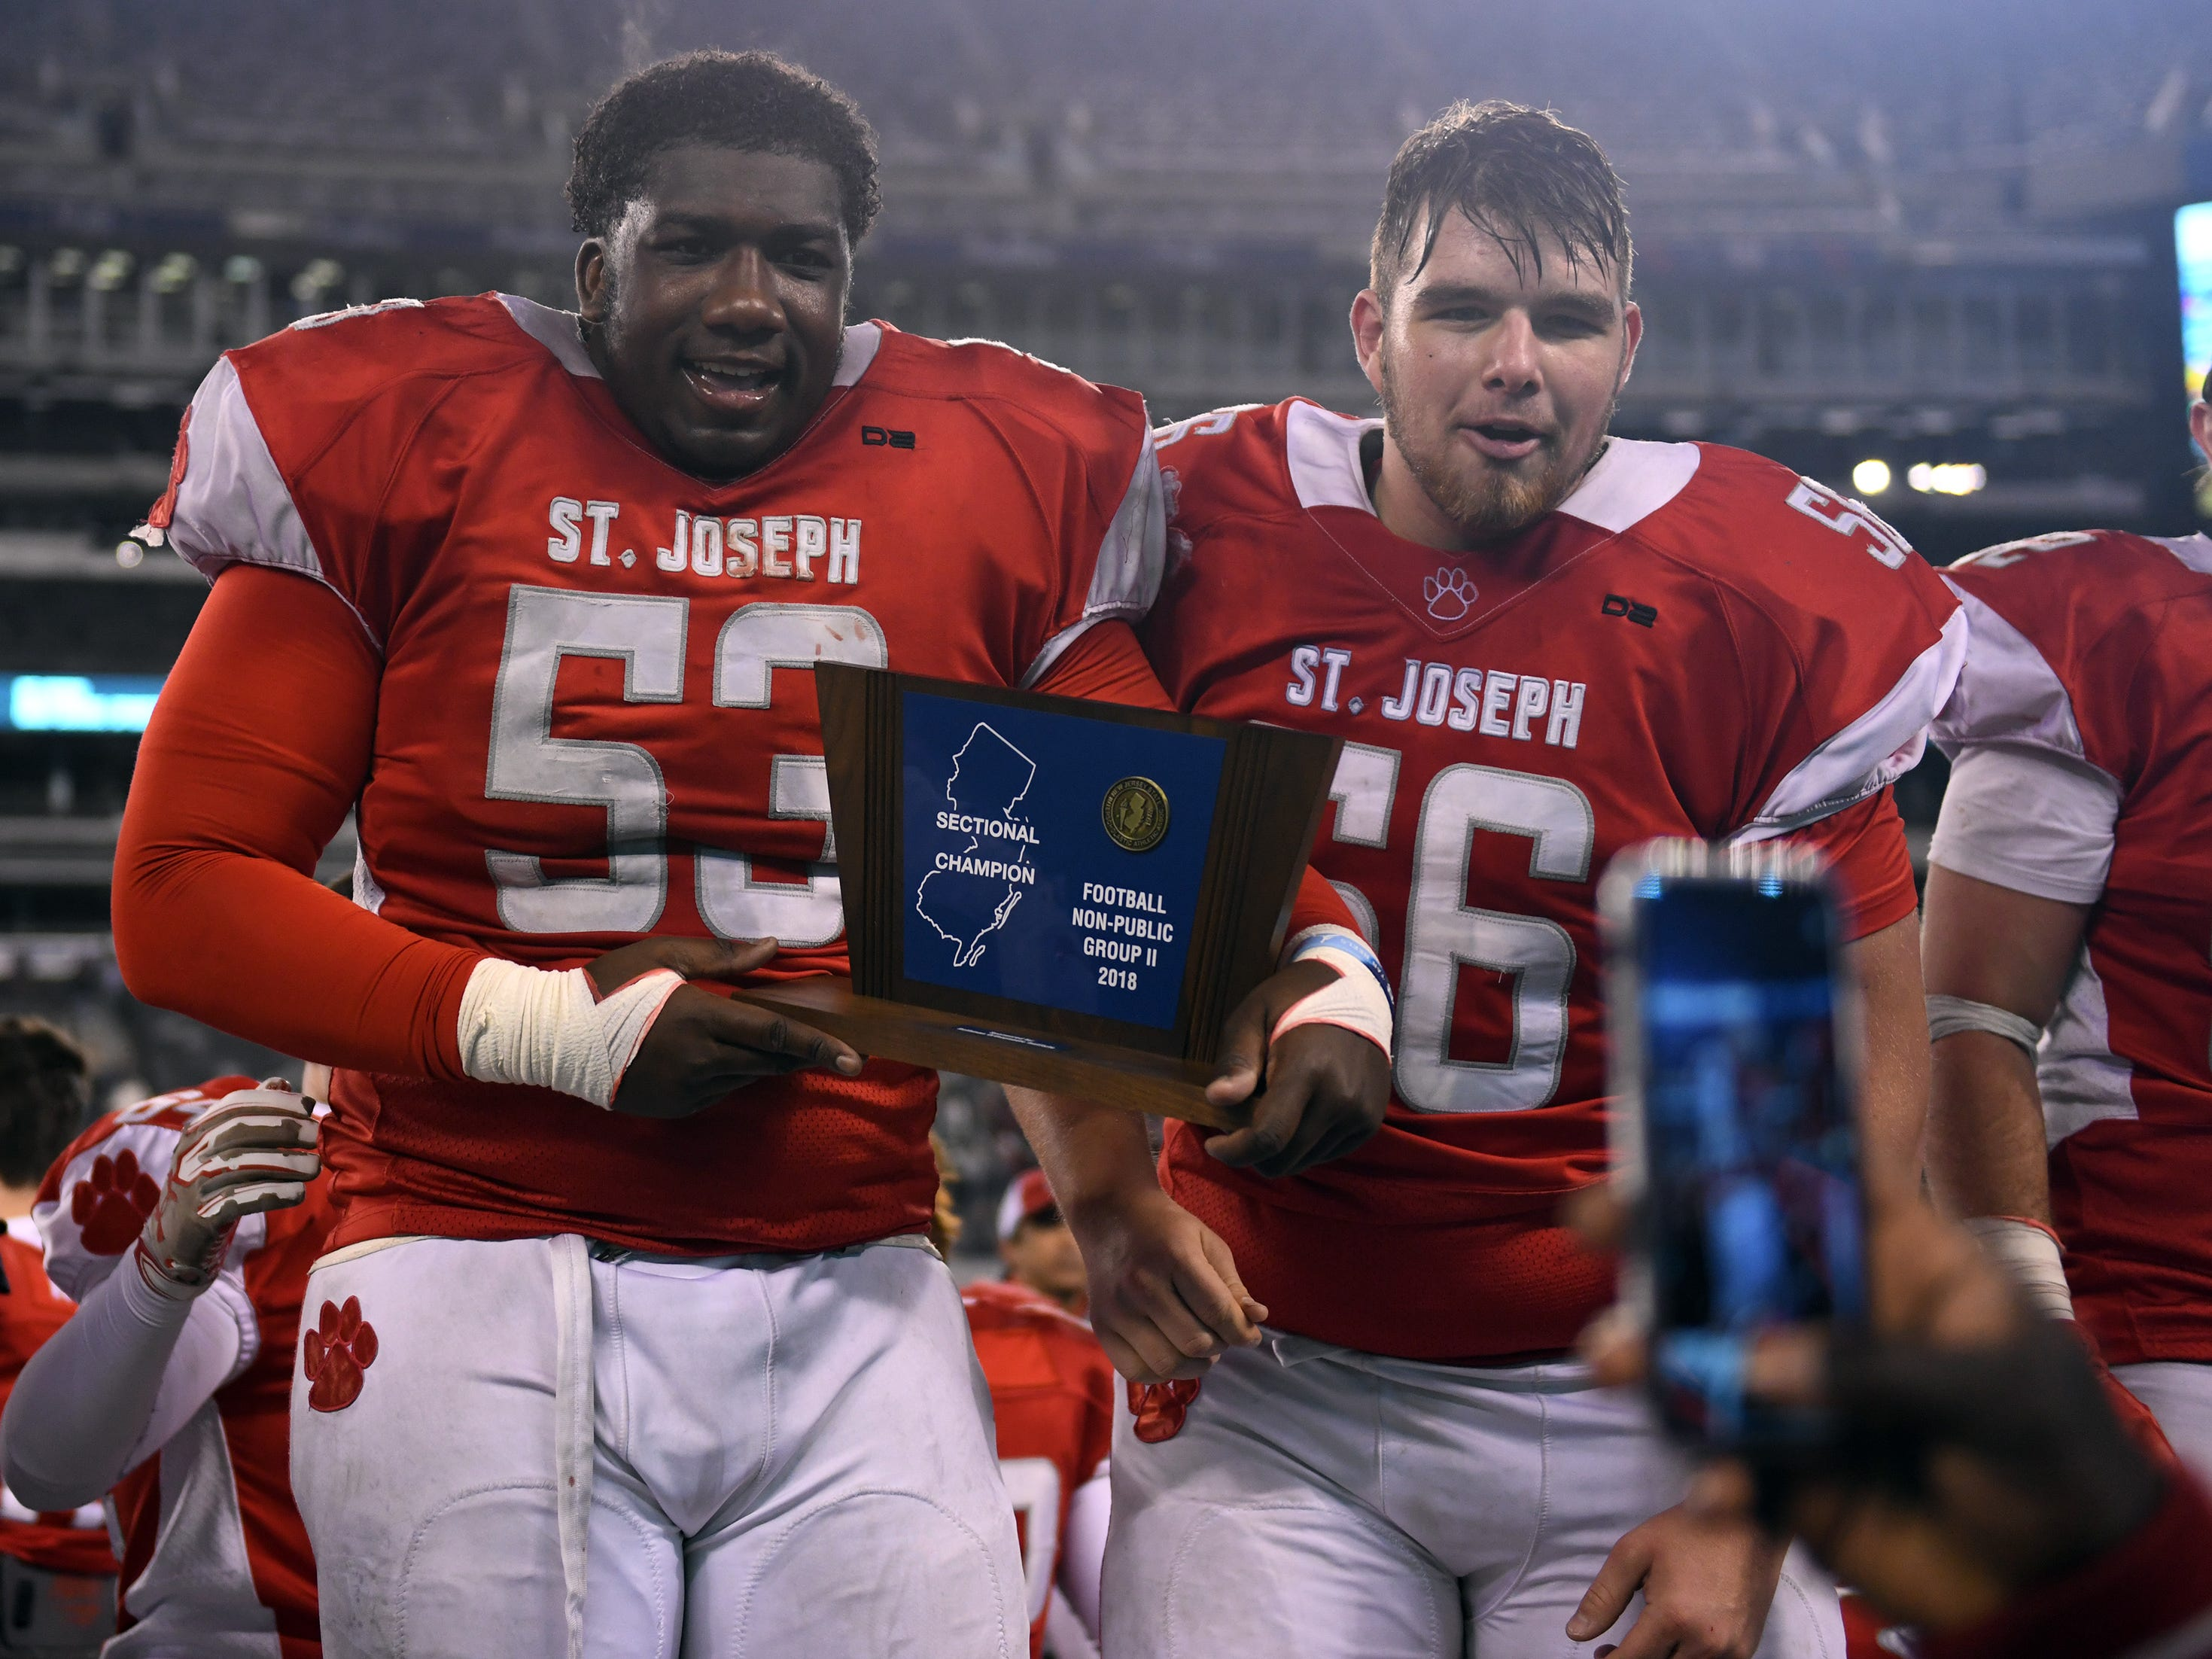 St. Joseph's Sean Morris and Tucker Monico celebrate after winning the Non-Public 2 state championship game at MetLife Stadium on Friday, November 30, 2018.